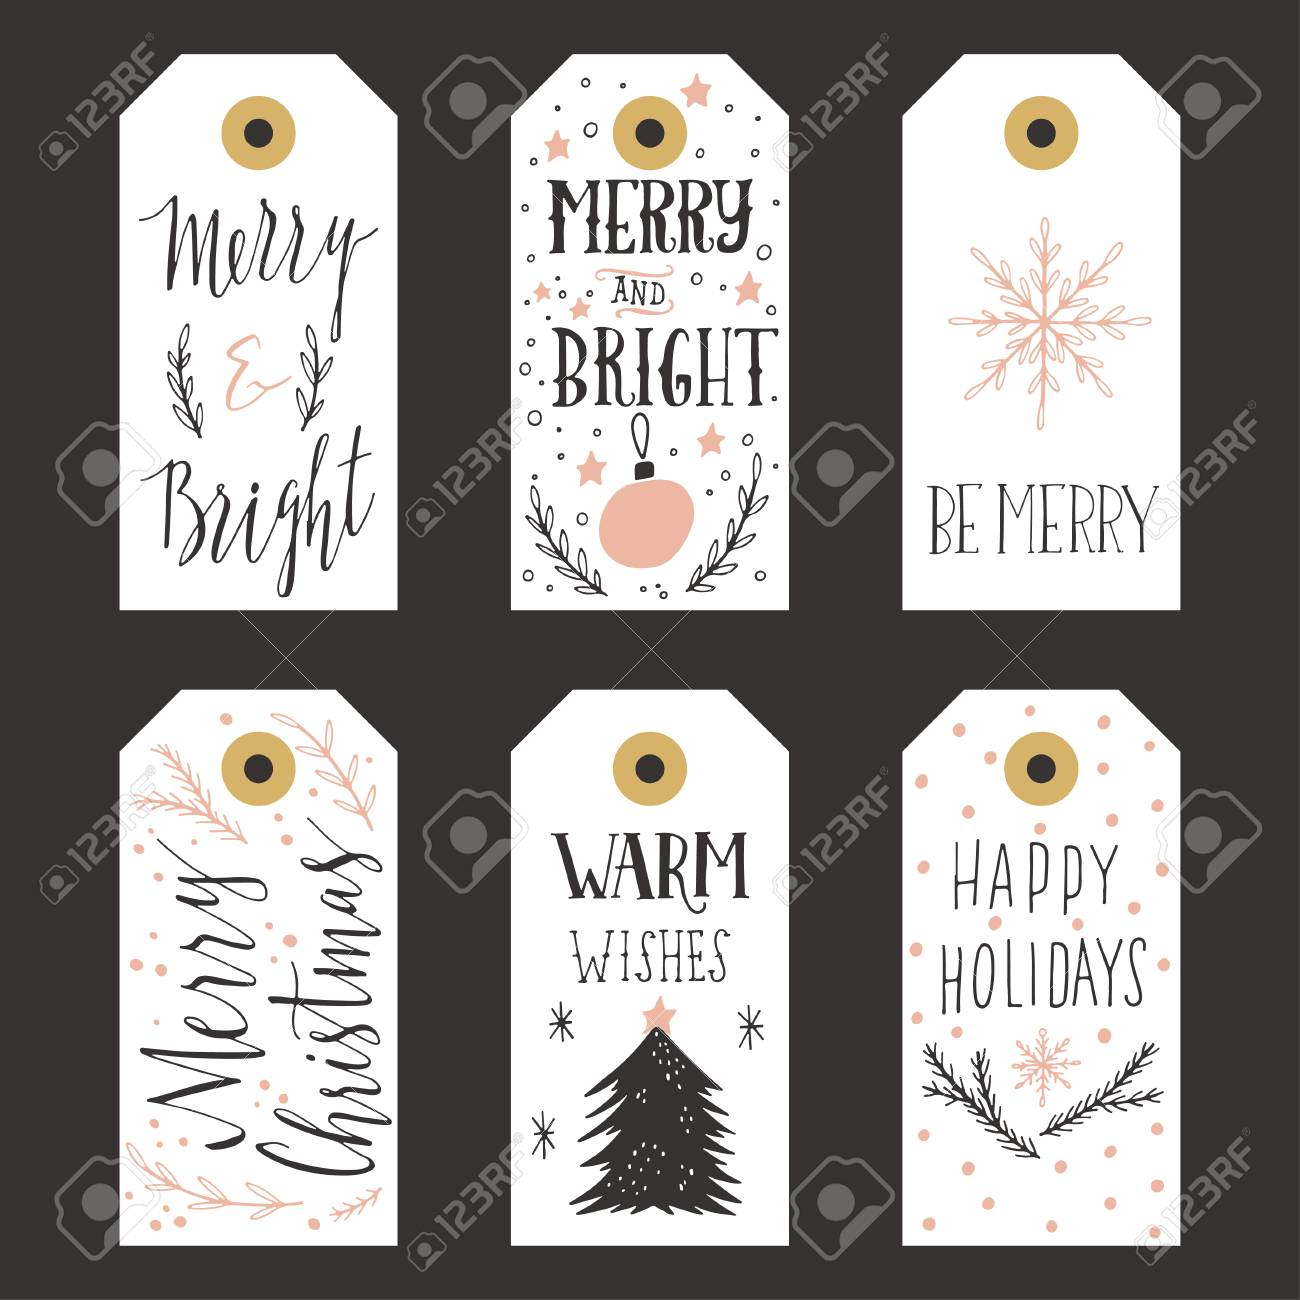 Vintage Christmas Gift Tags Royalty Free Cliparts, Vectors, And ...